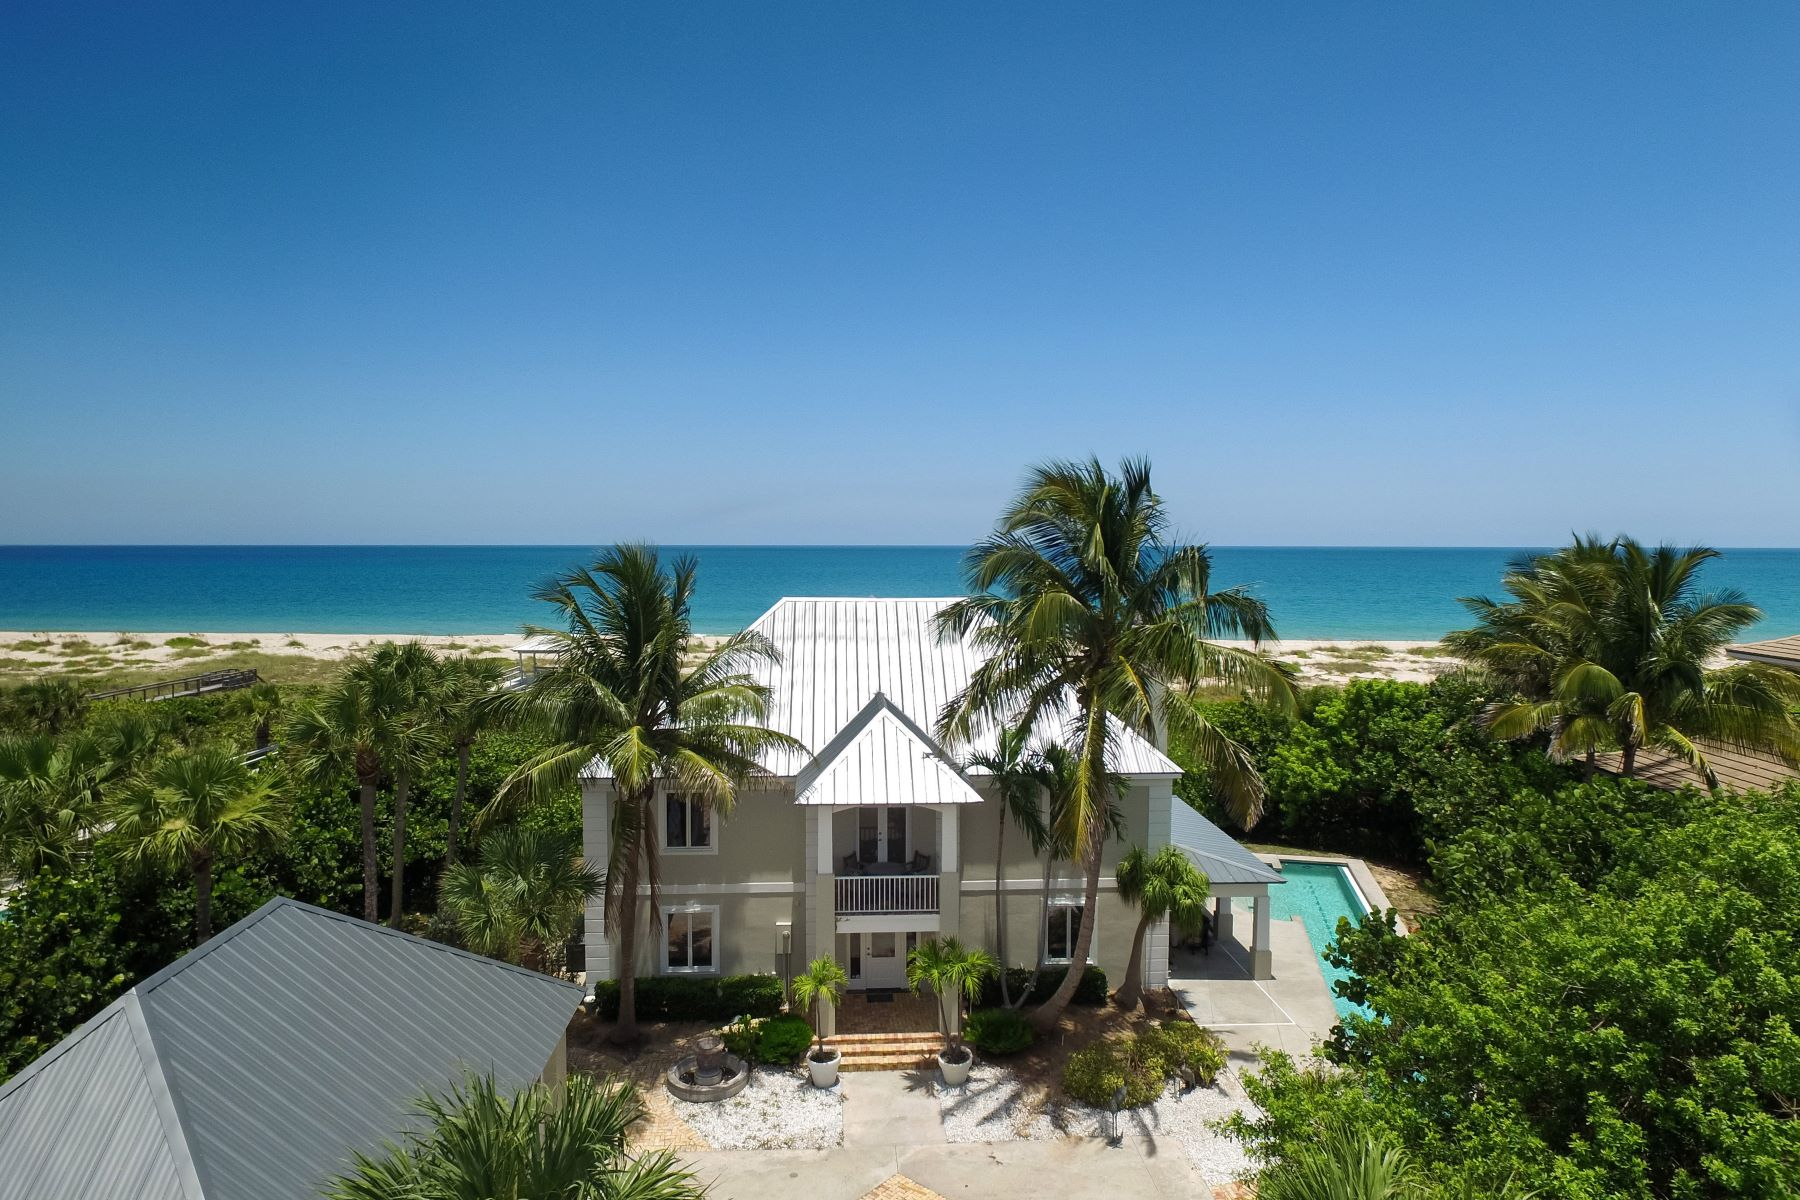 Casa Unifamiliar por un Venta en Oceanfront Estate Home 820 Crescent Beach Road Vero Beach, Florida 32963 Estados Unidos